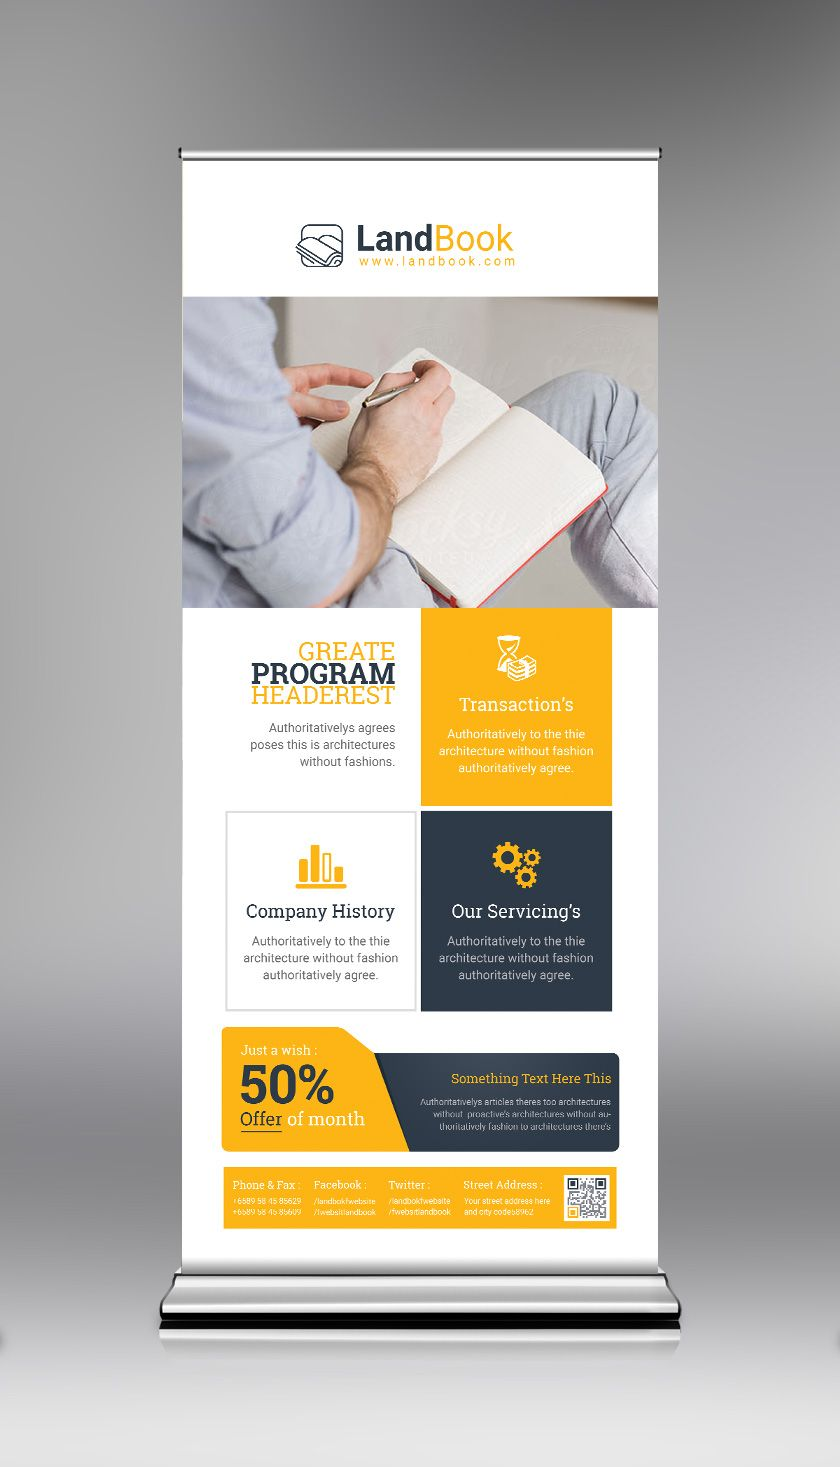 Psd Elegant Roll Up Banner Template Graphic Templates Roller Banner Banner Template Rollup Banner Design